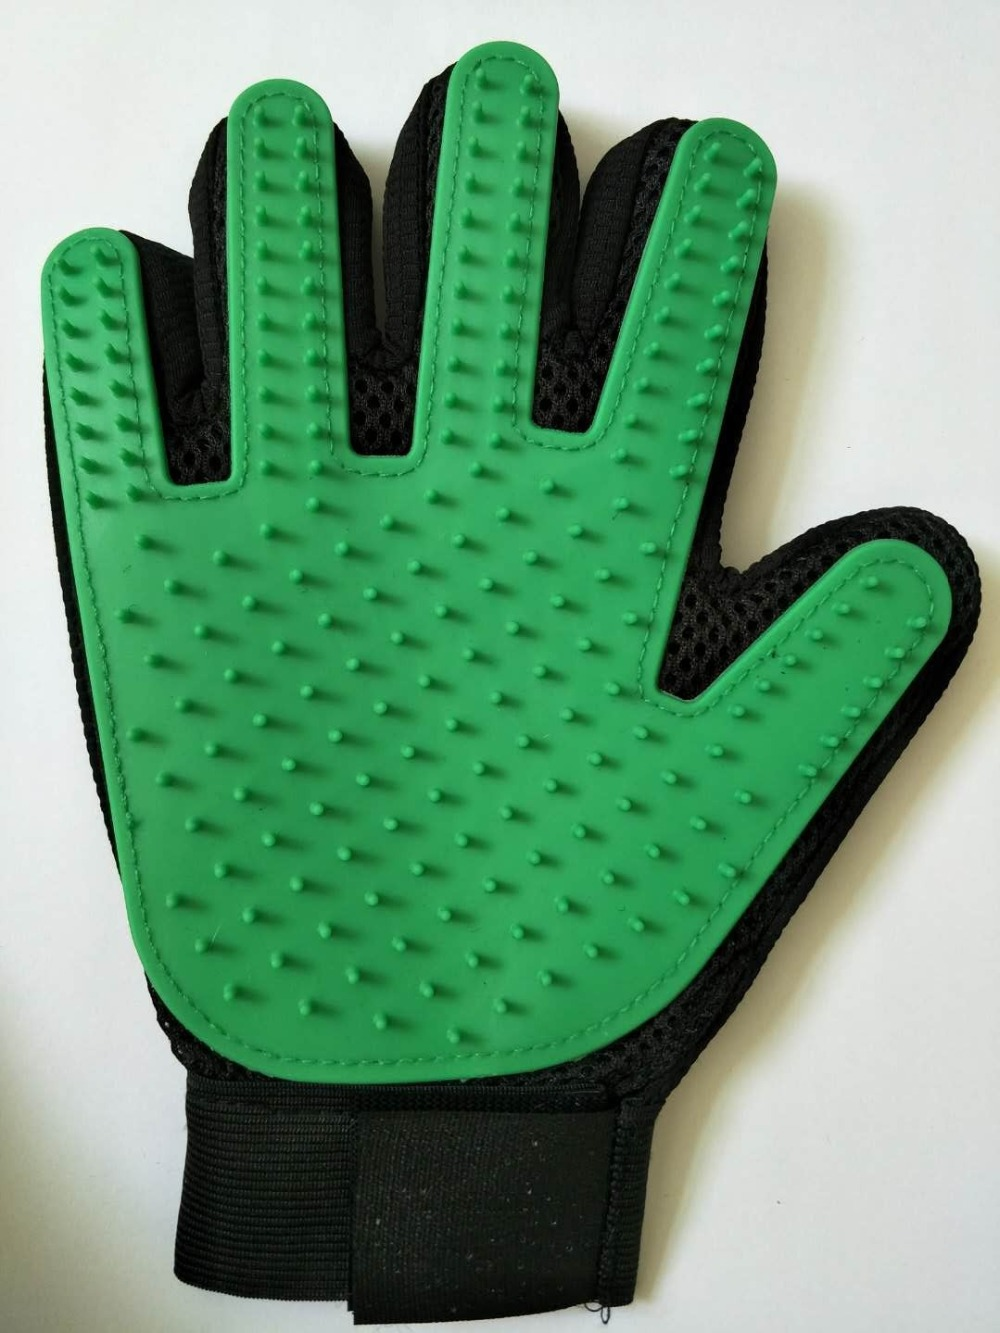 Dropshipping Glove #6